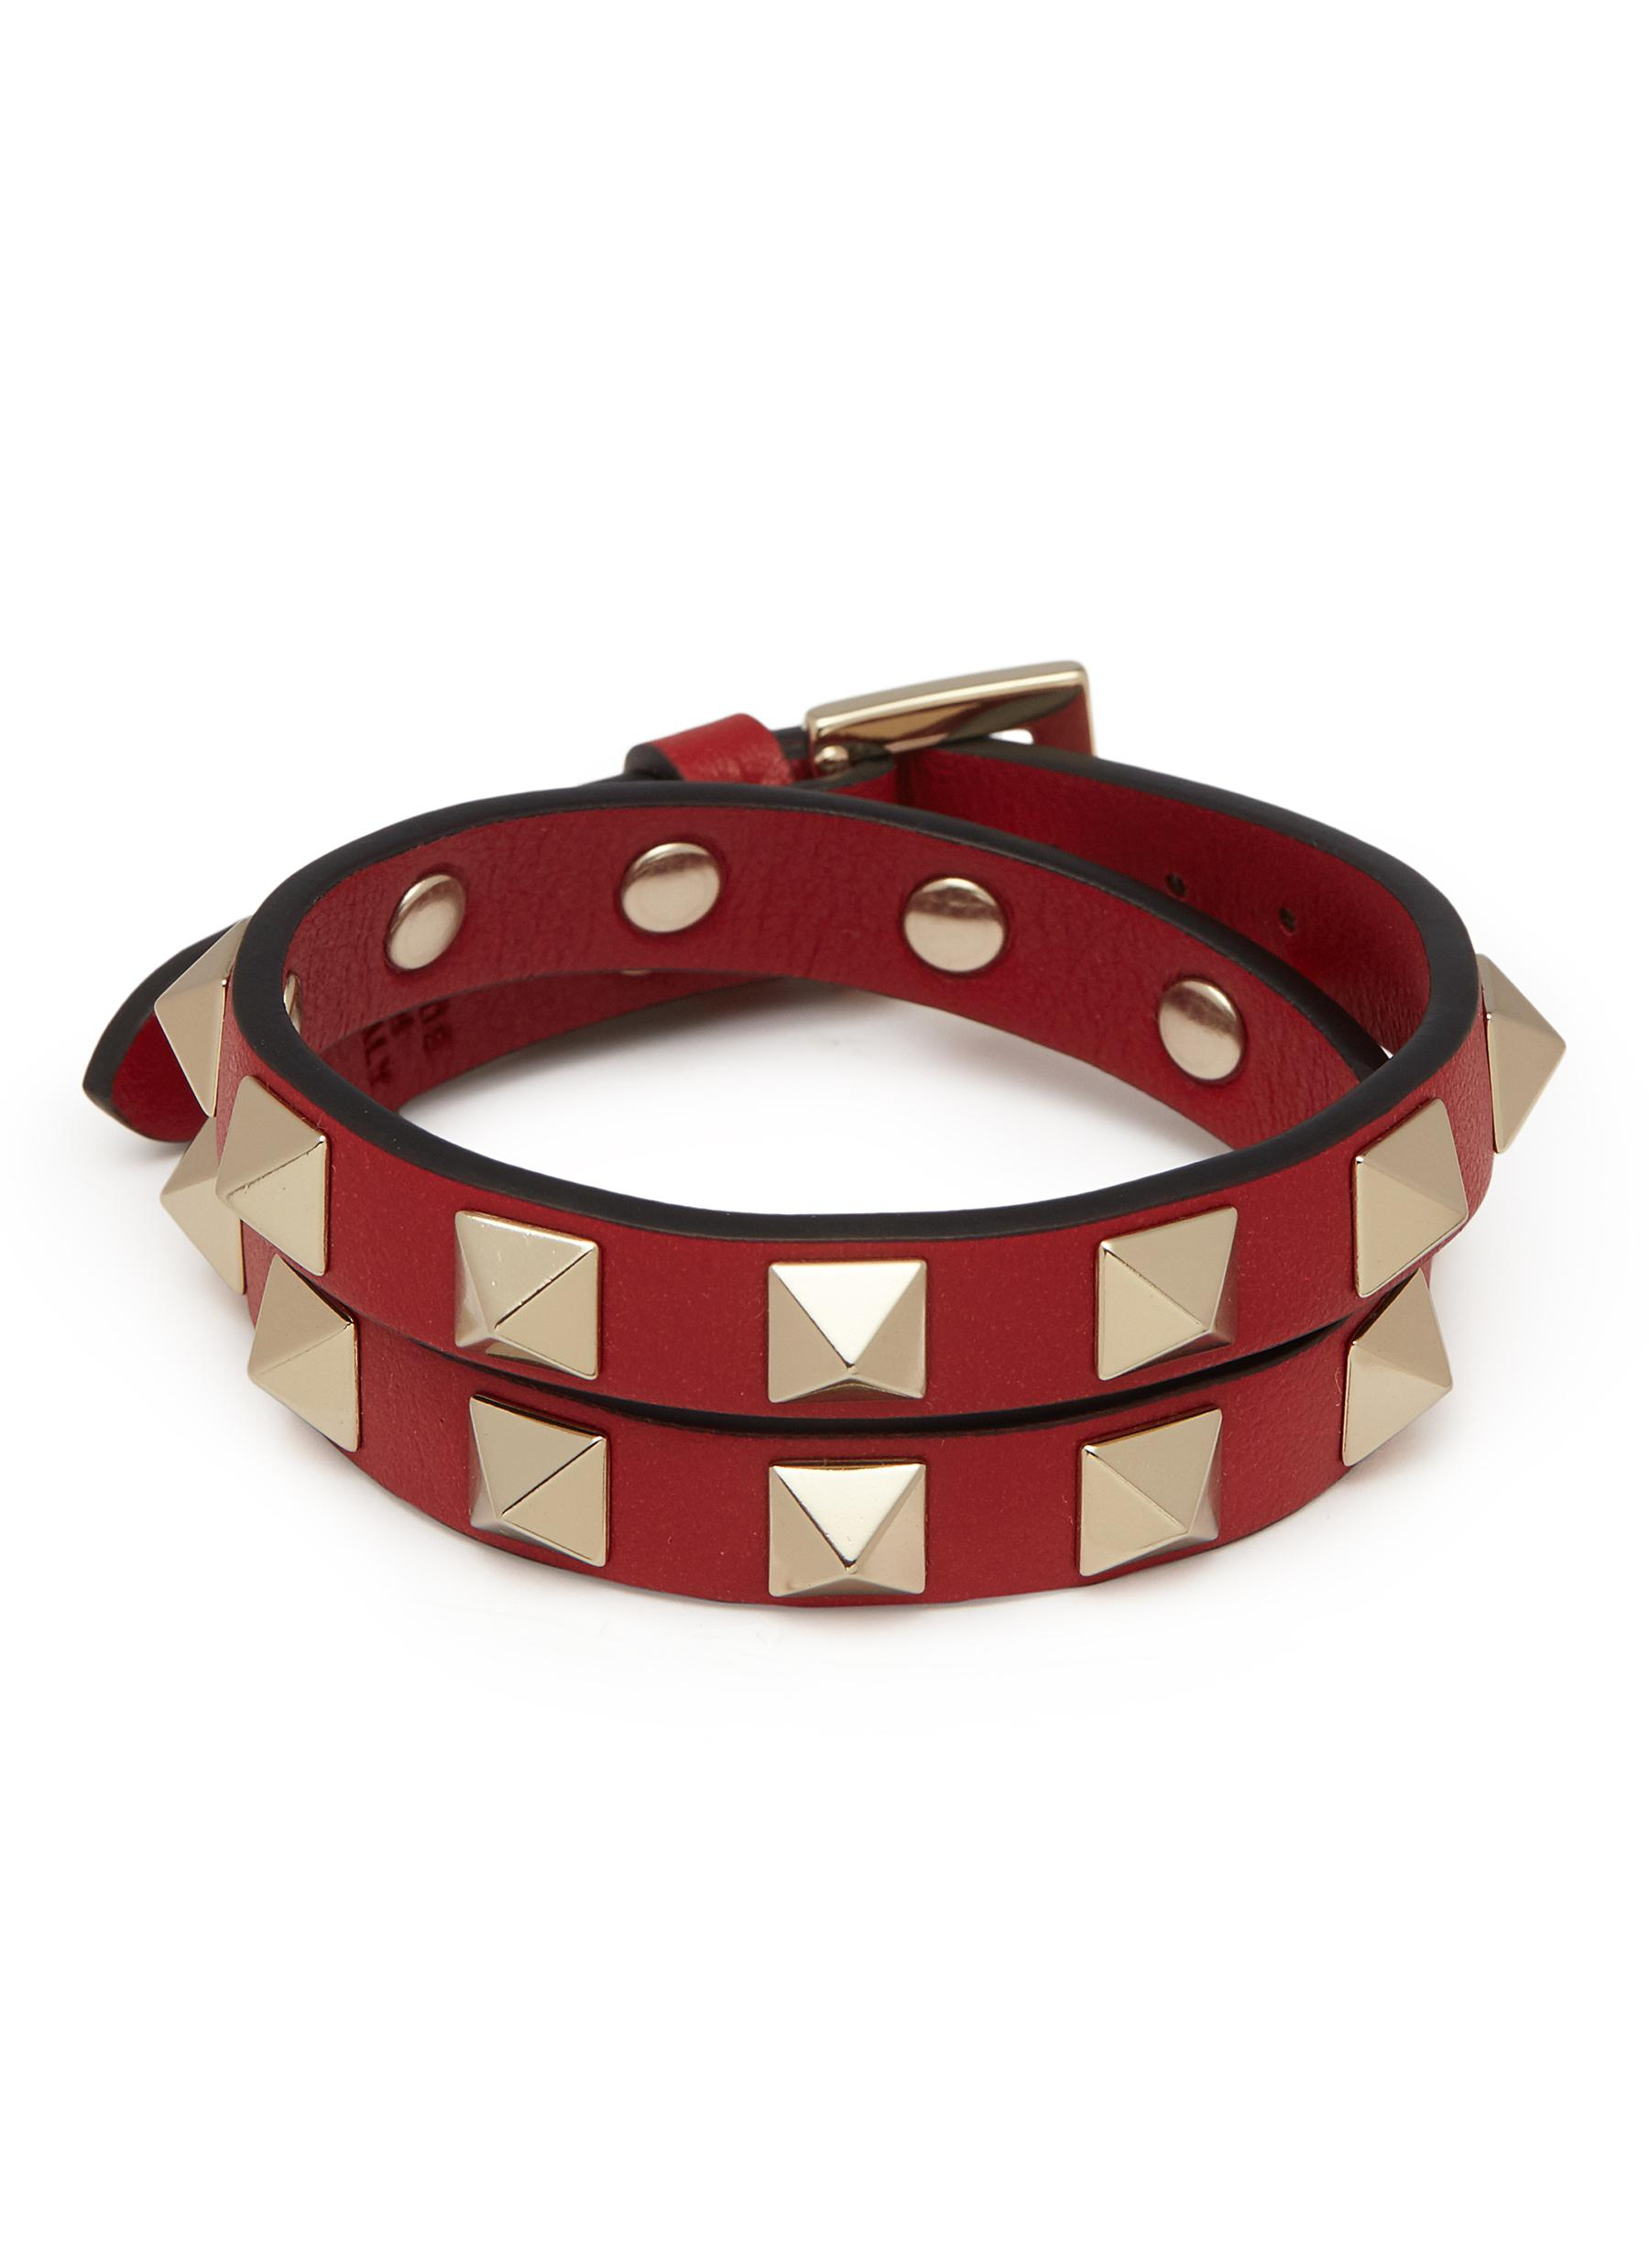 78ebad42053b Main View - Click To Enlarge - Valentino -  Rockstud  double wrap leather  bracelet